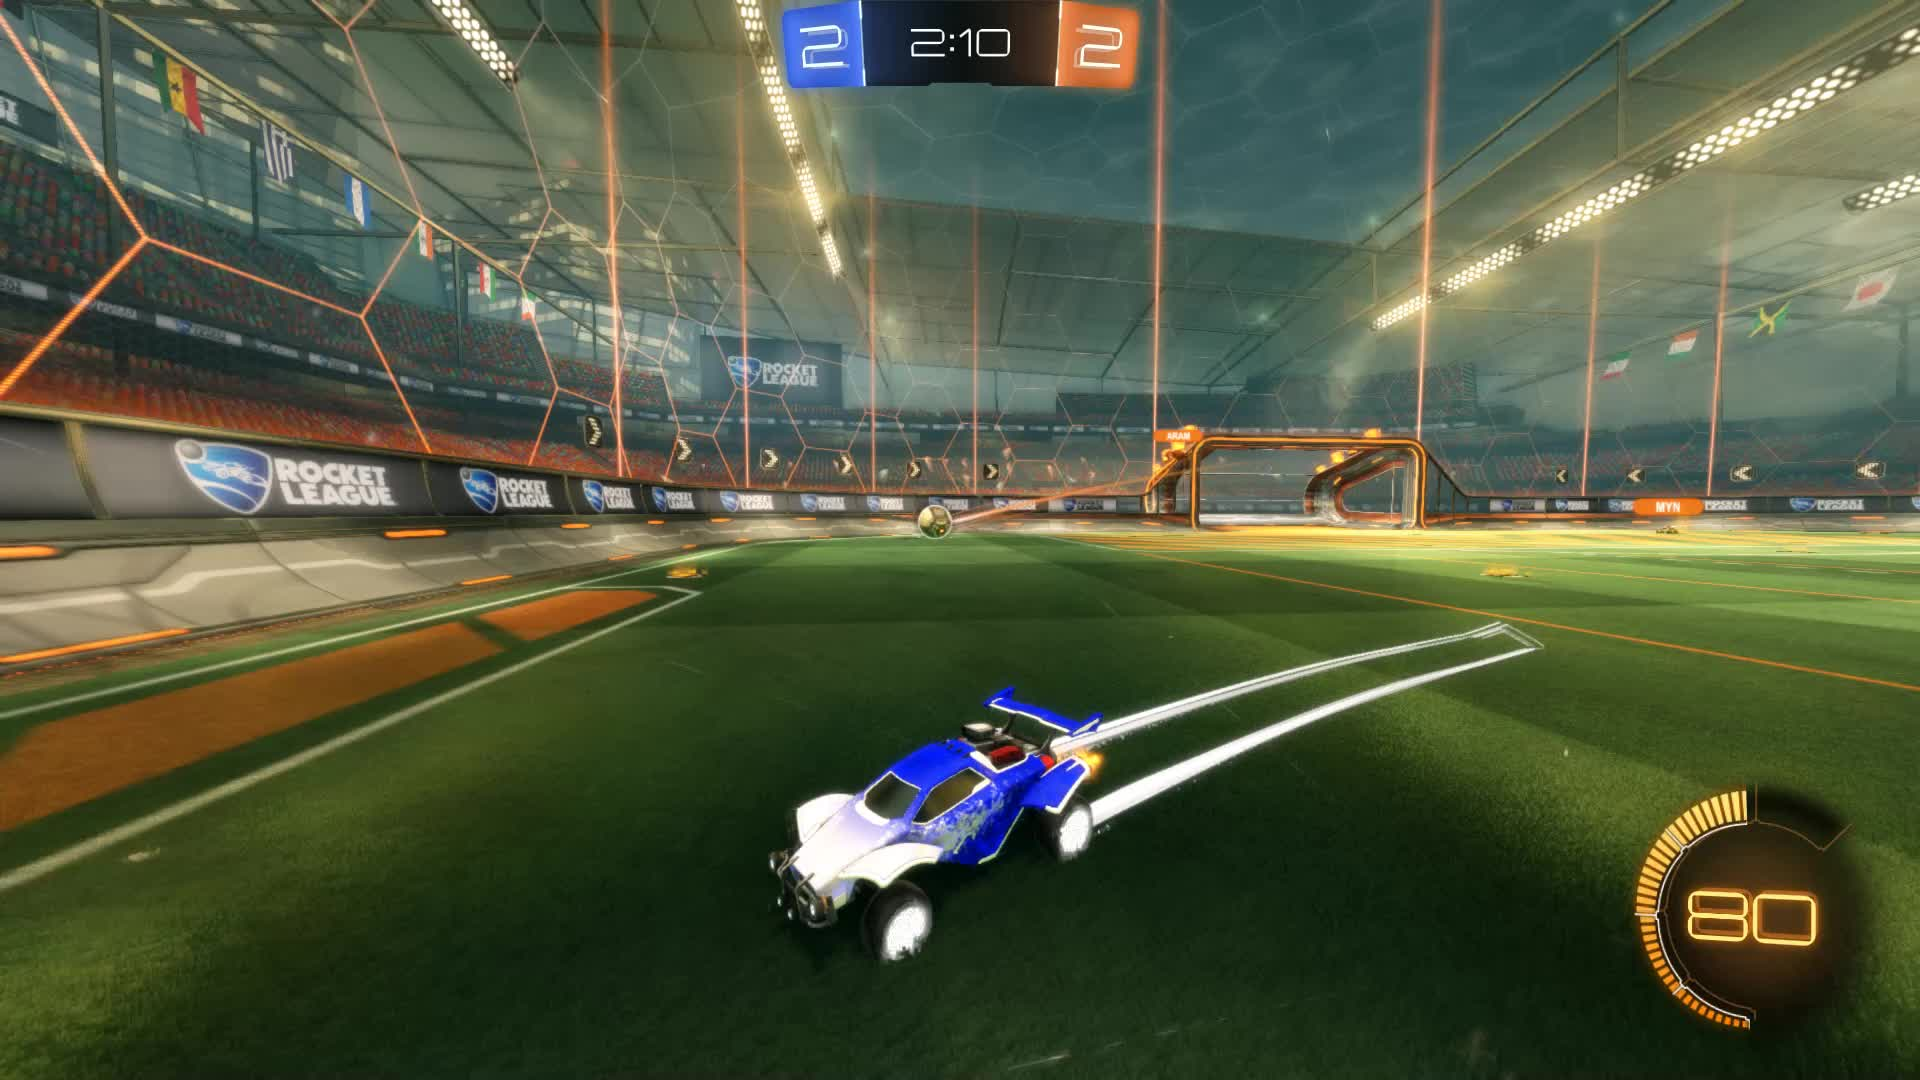 Gif Your Game, GifYourGame, Goal, Ihr seid eine muschi., Rocket League, RocketLeague, Goal 5: Aram GIFs